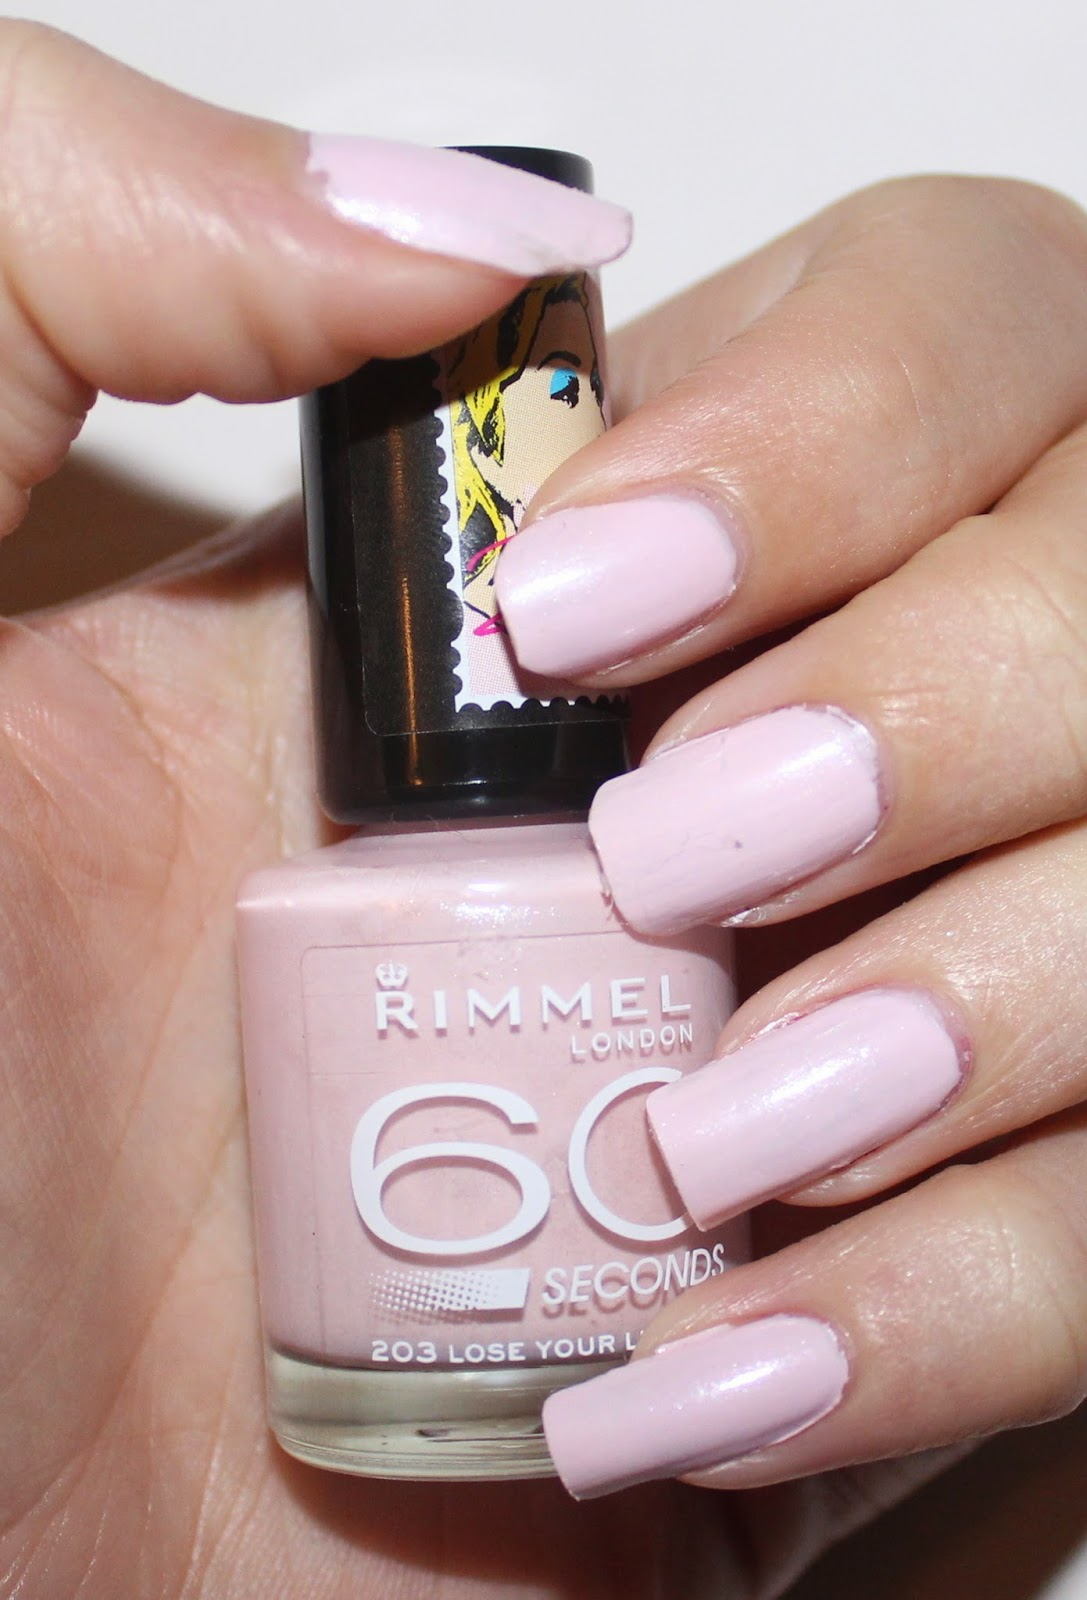 Rimmel London x Rita Ora 60 Seconds Nail Polish in Lose Your Lingerie